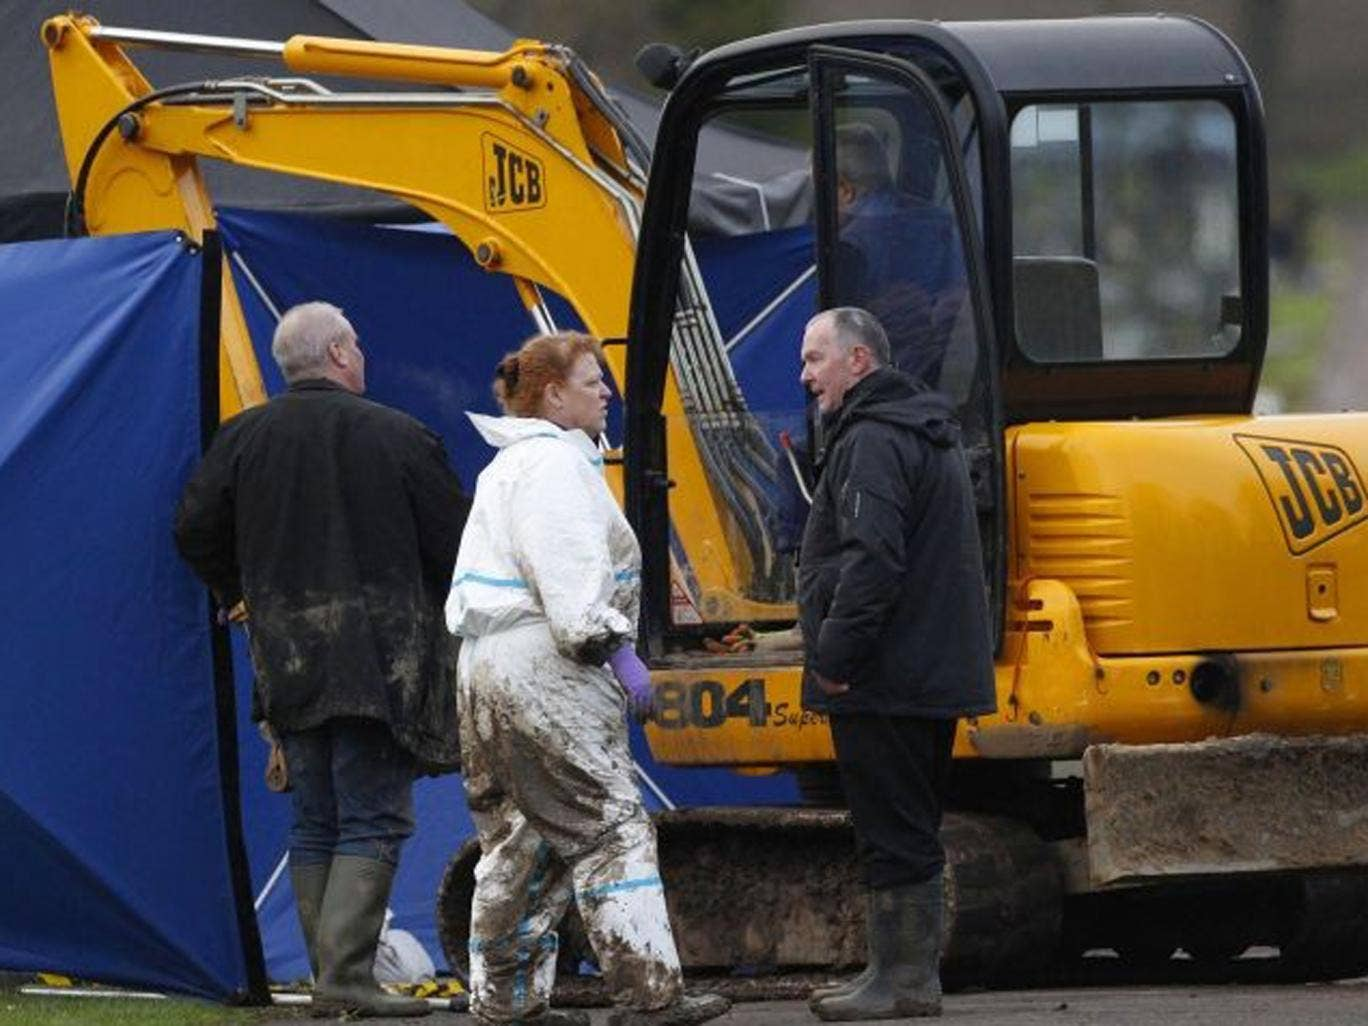 Forensic anthropologist Sue Black speaks with colleagues during the exhumation